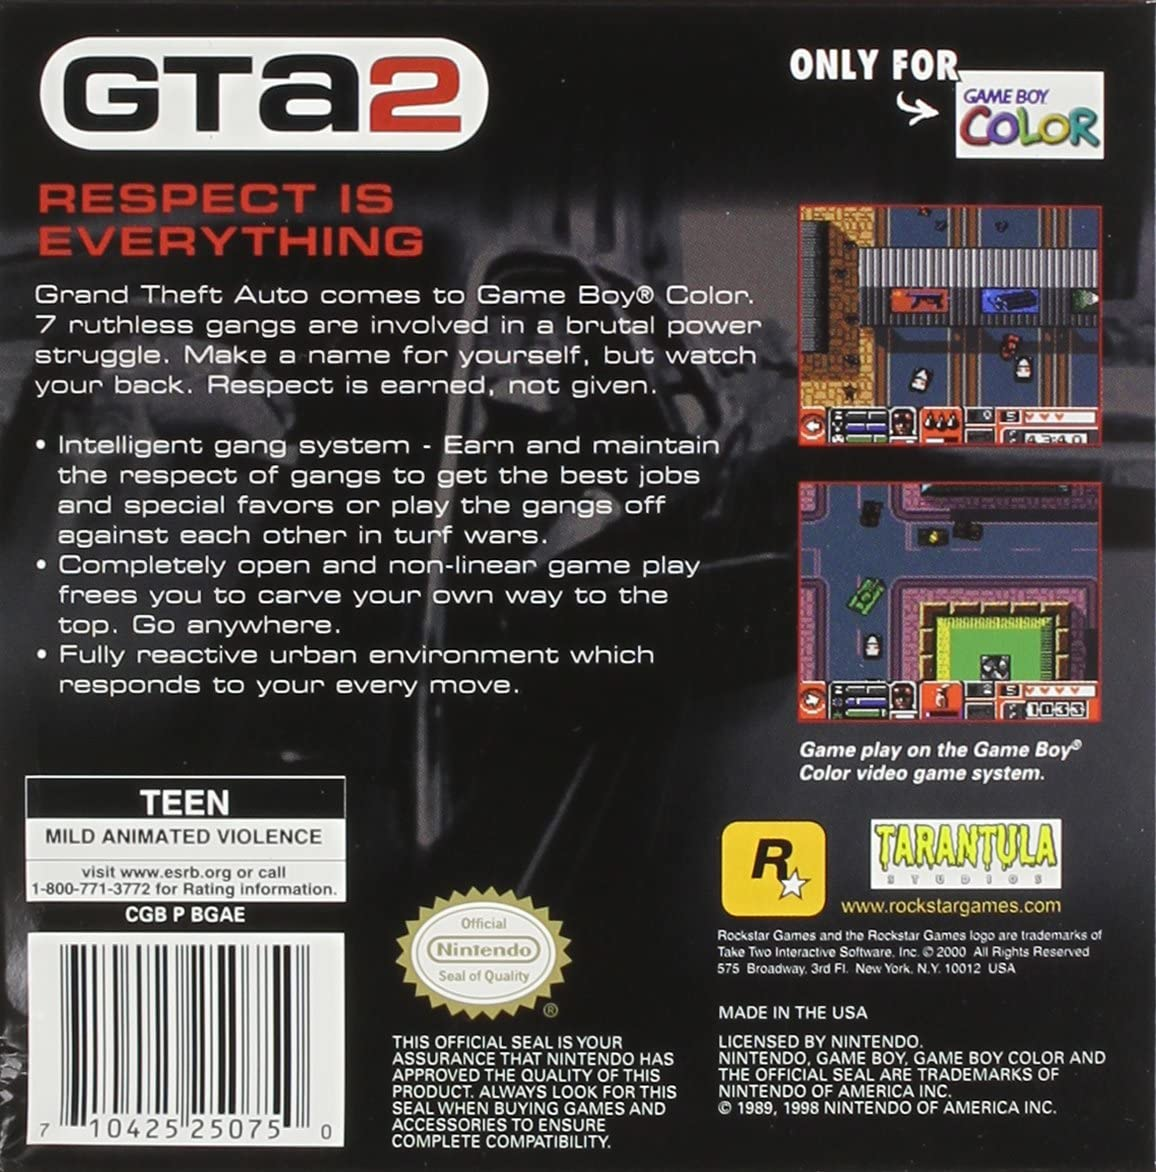 Gta 2 gameboy color - Amazon Com Grand Theft Auto 2 Game Boy Color Nintendo Game Boy Color Video Games